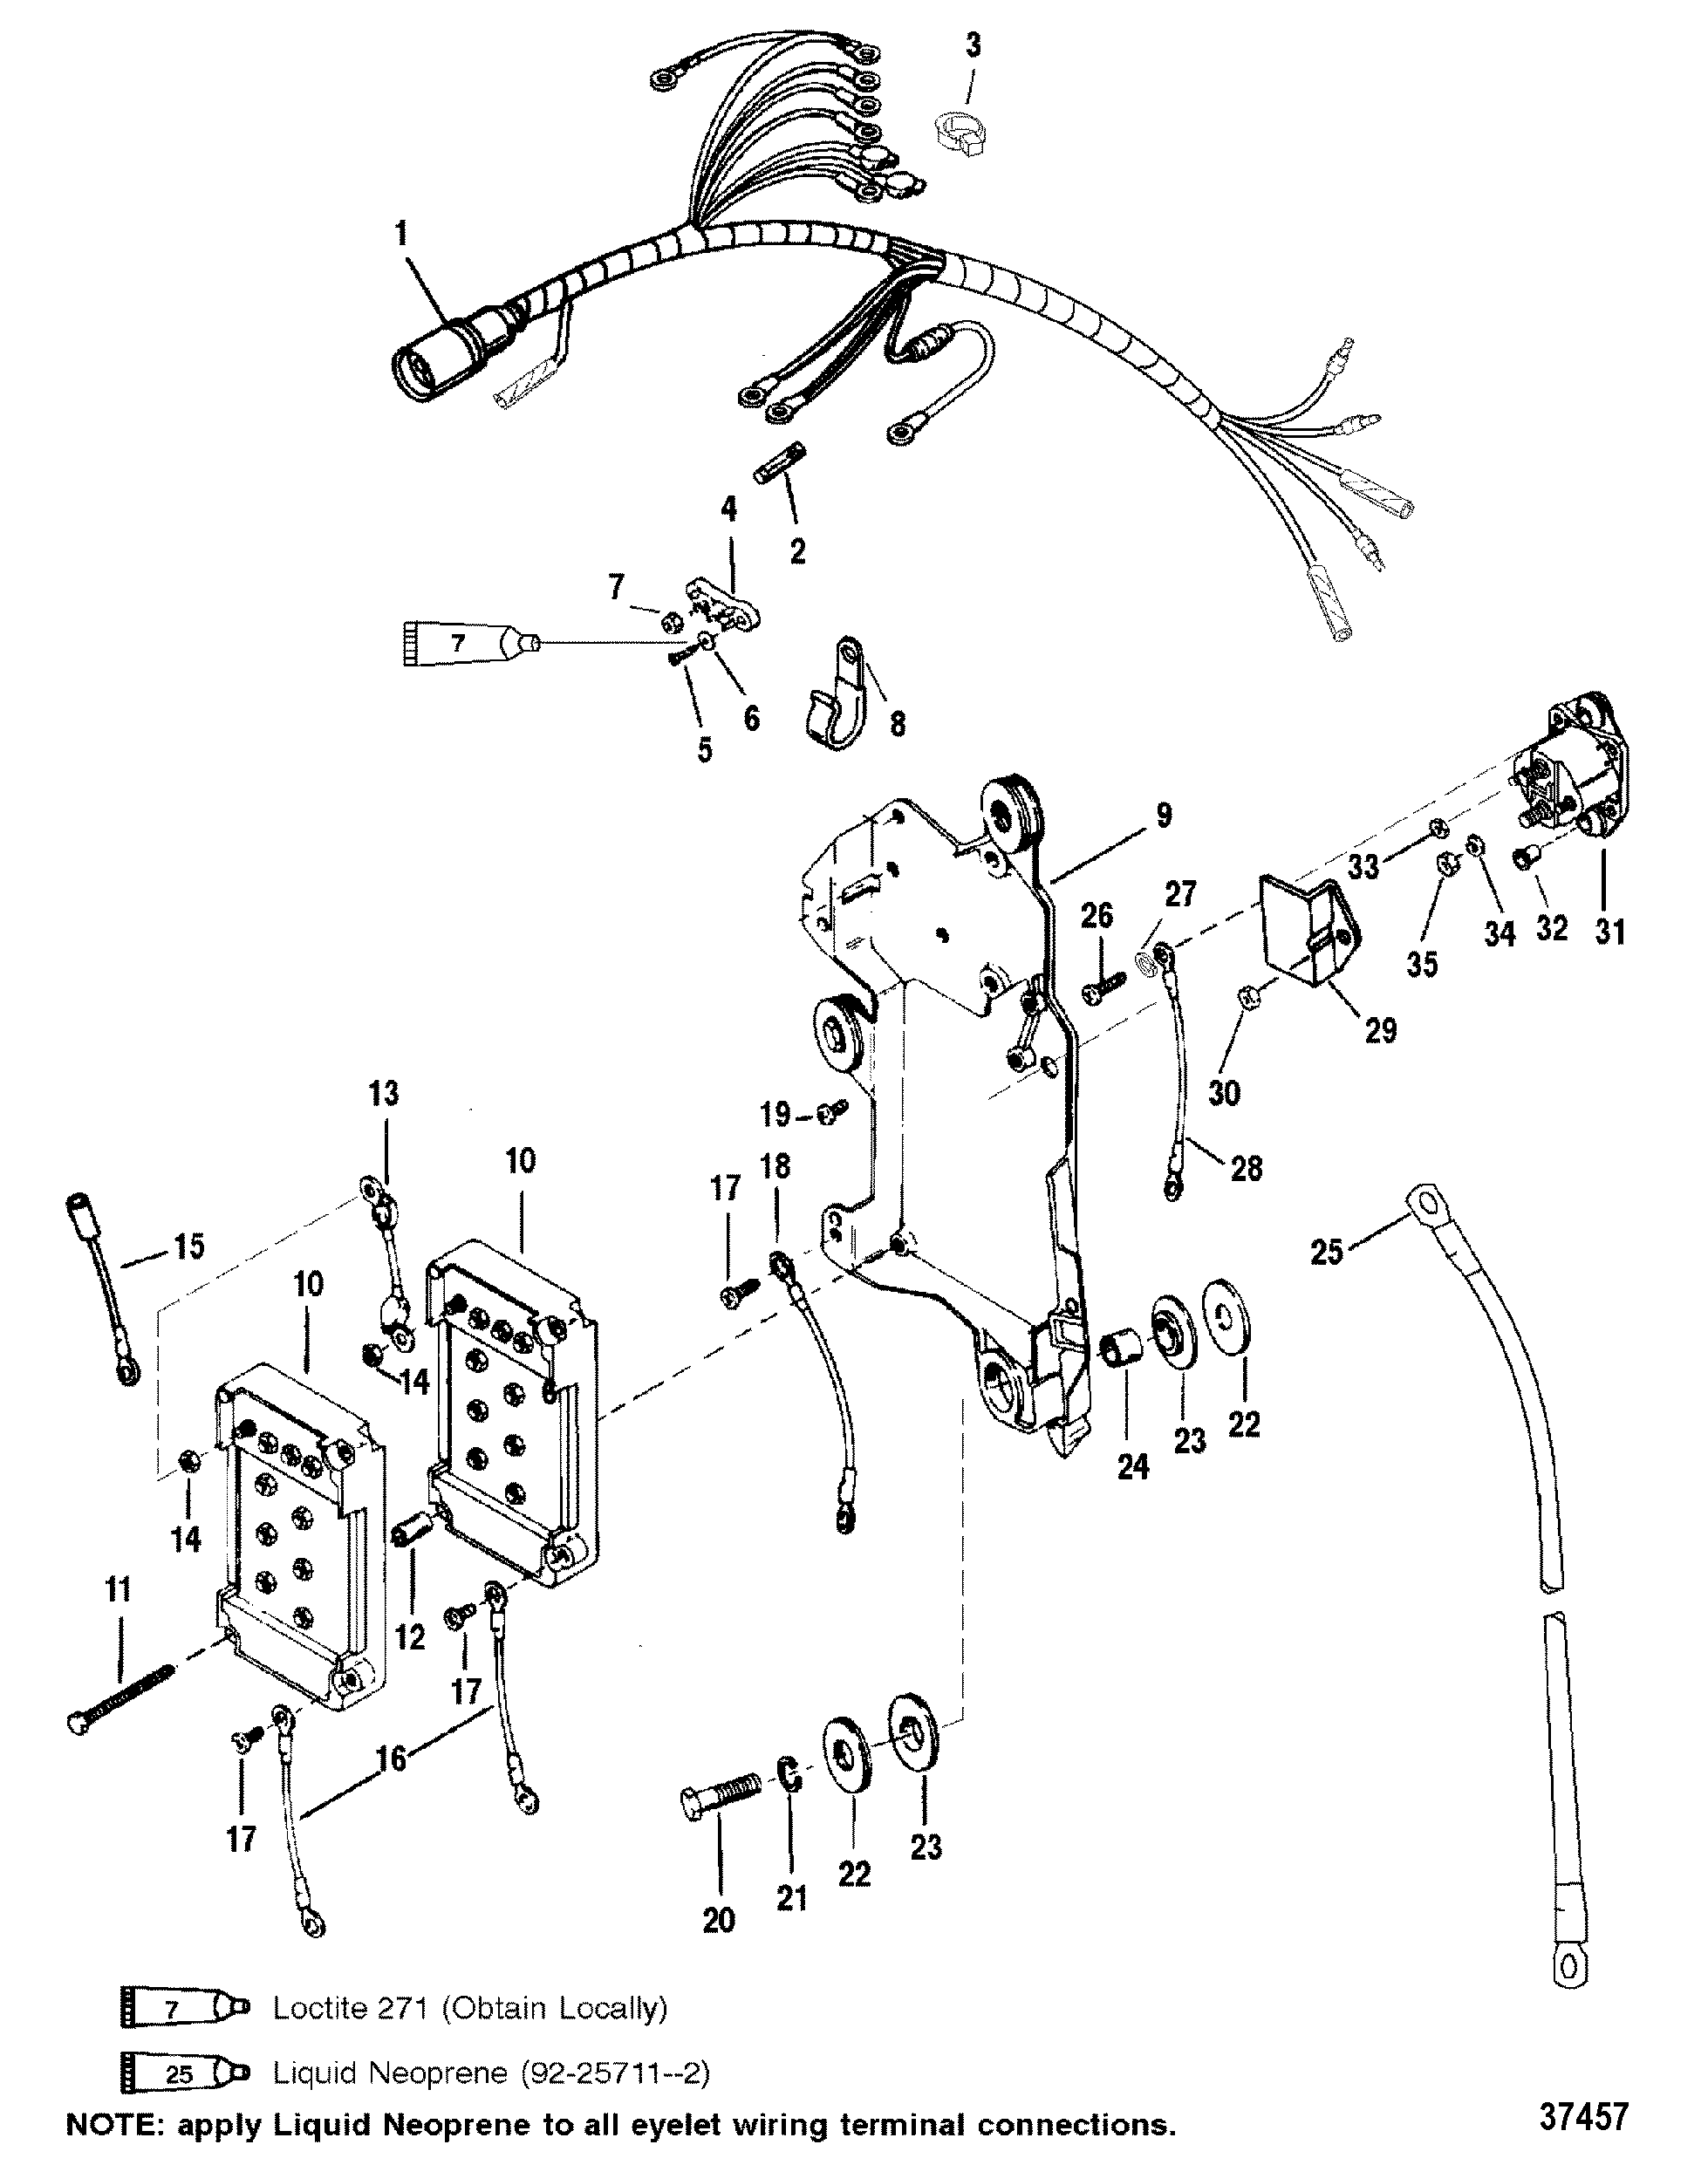 37457 wiring harness starter solenoid for mariner mercury 150 175 200 efi mercury 14 pin wiring harness diagram at webbmarketing.co